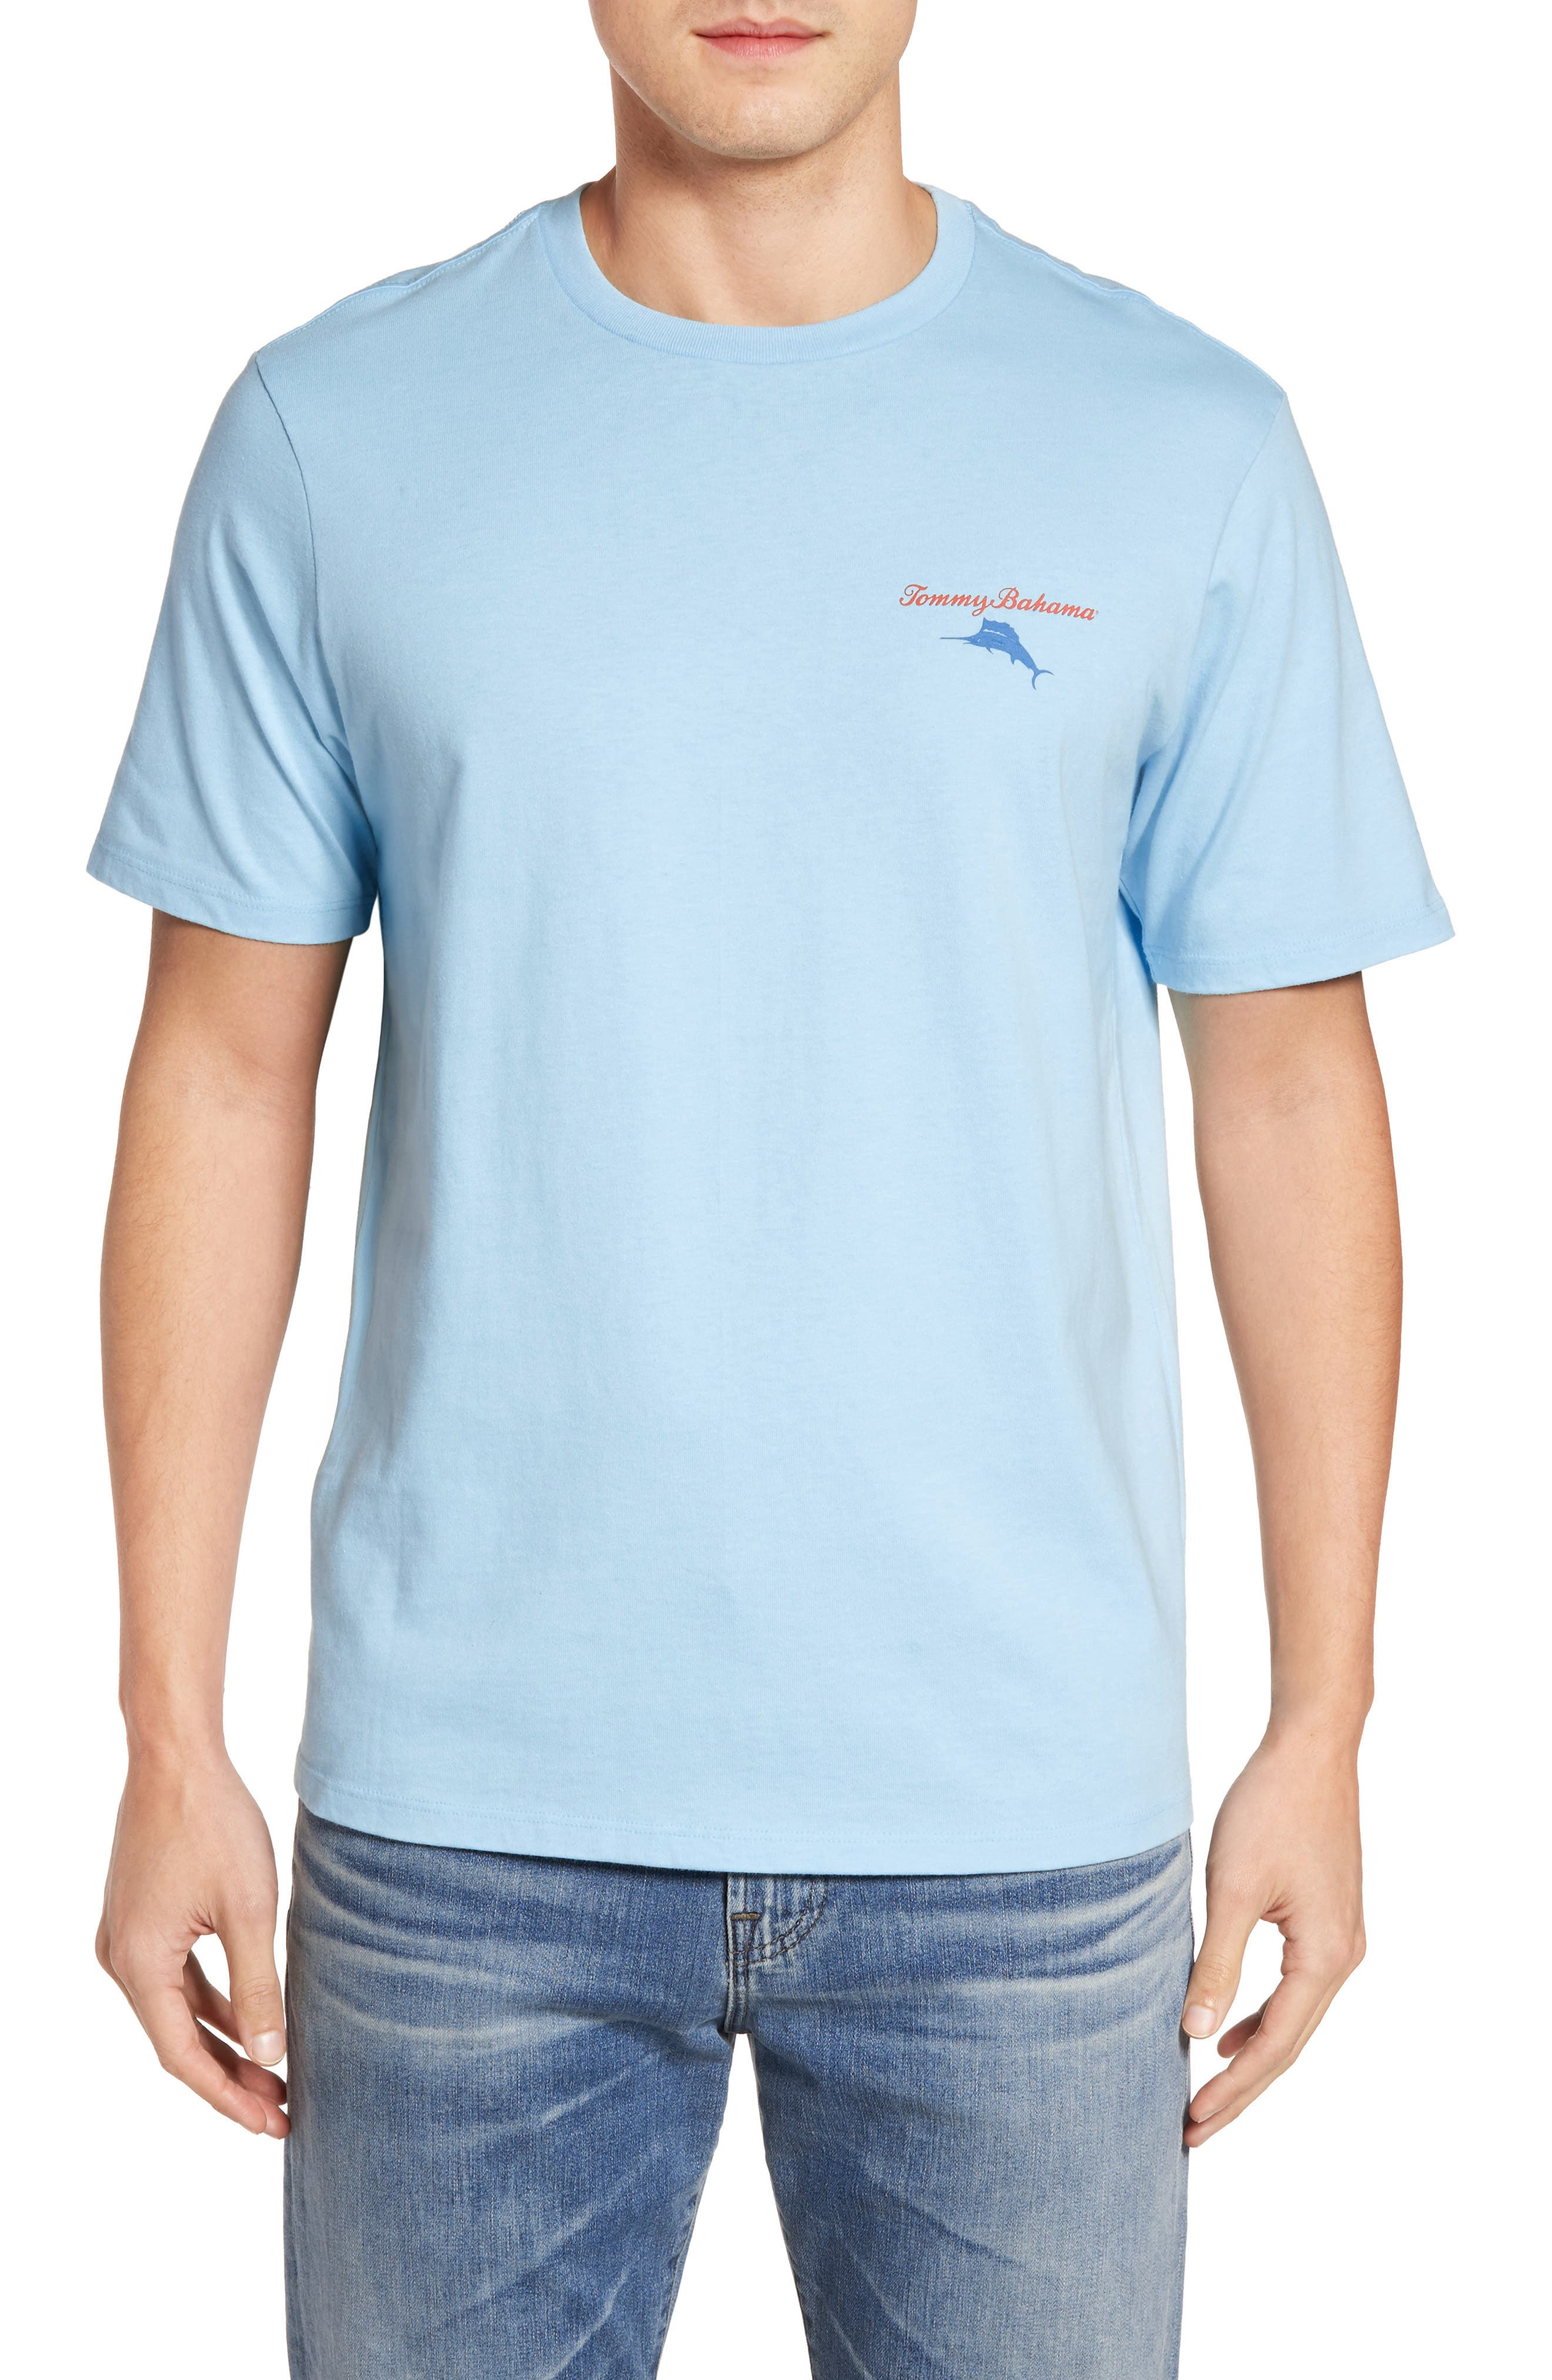 Mr. Ice Guy T-Shirt,                         Main,                         color, 400